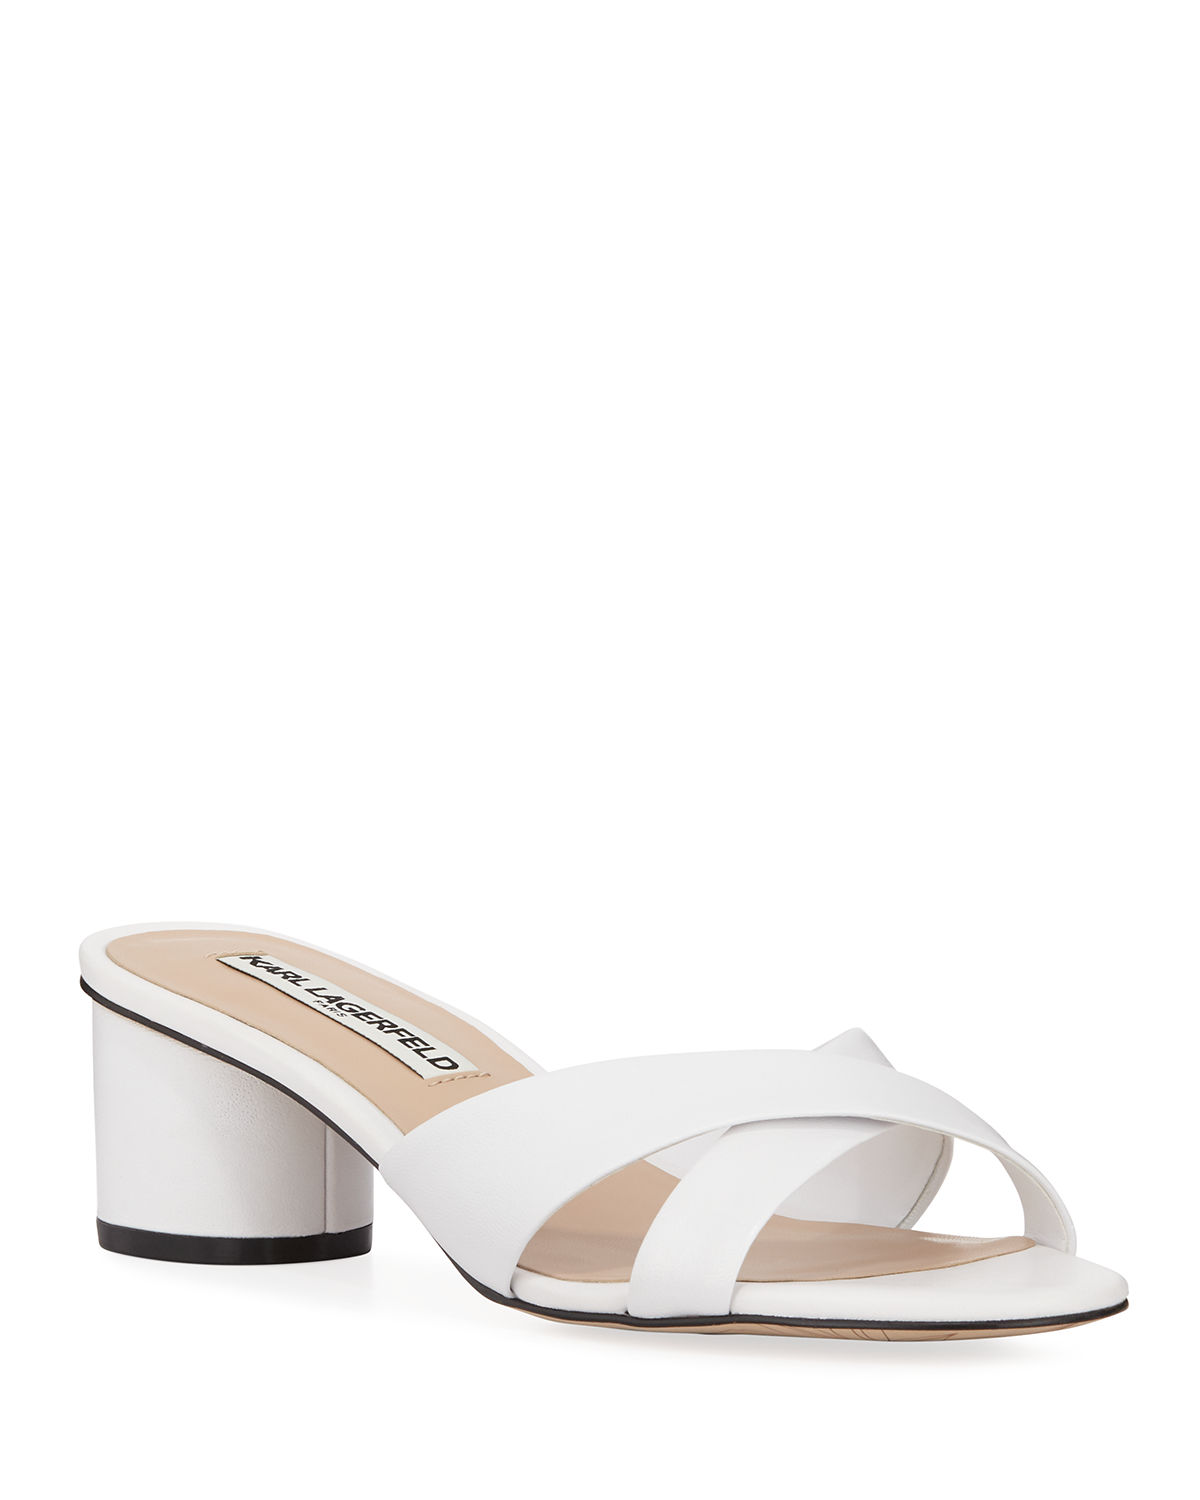 Karl Lagerfeld Leathers FAWN LEATHER CRISSCROSS SLIDE SANDALS